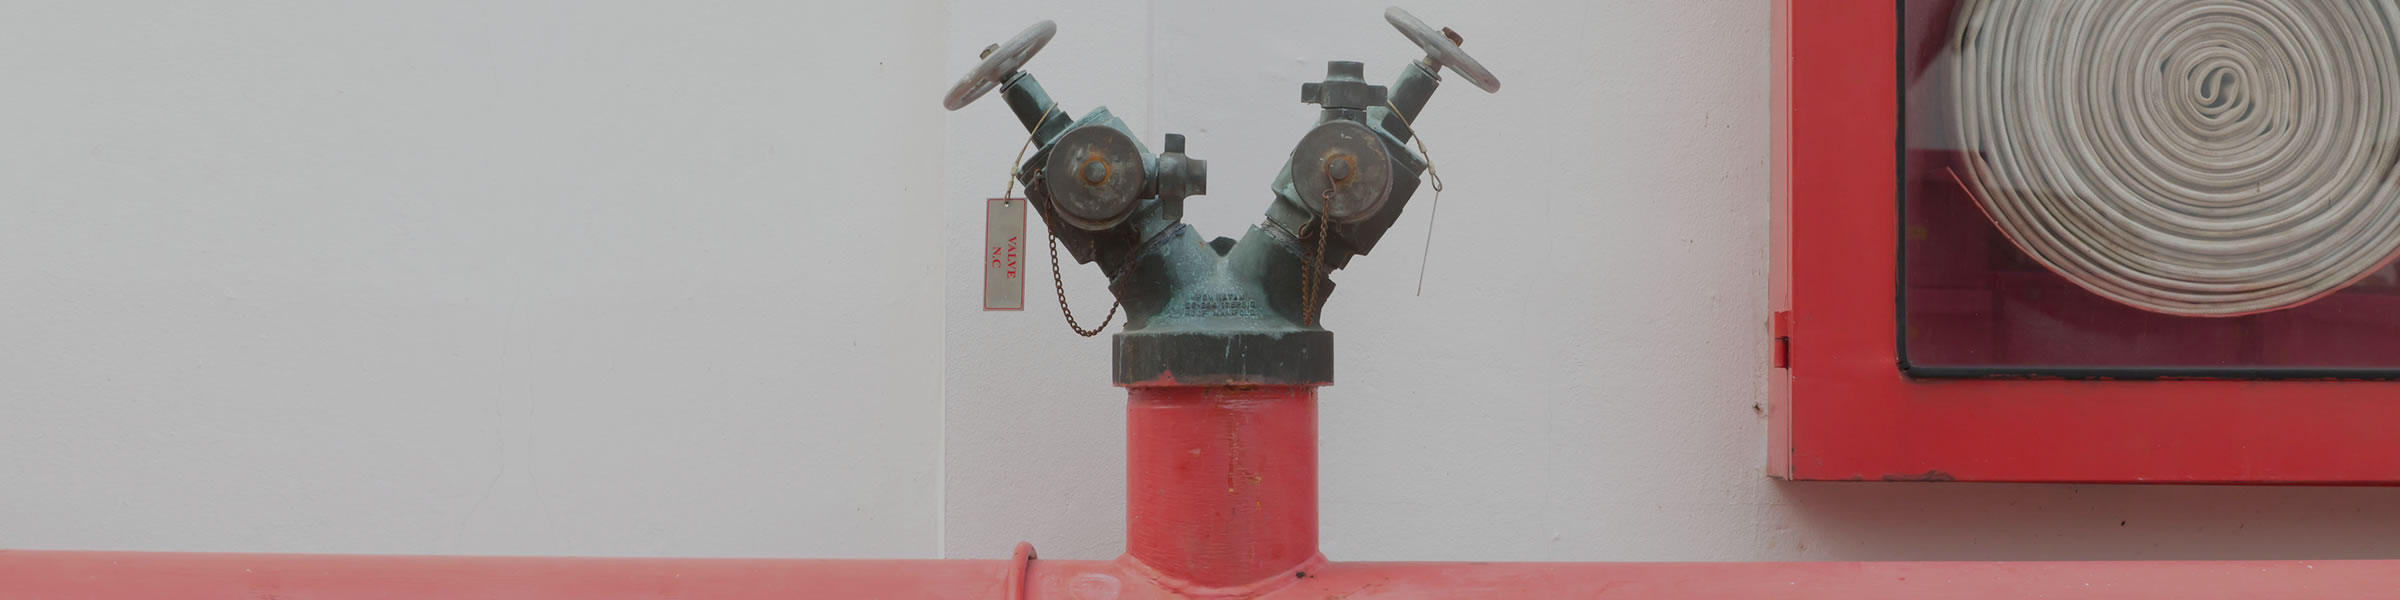 Fire protection equipment maintenance